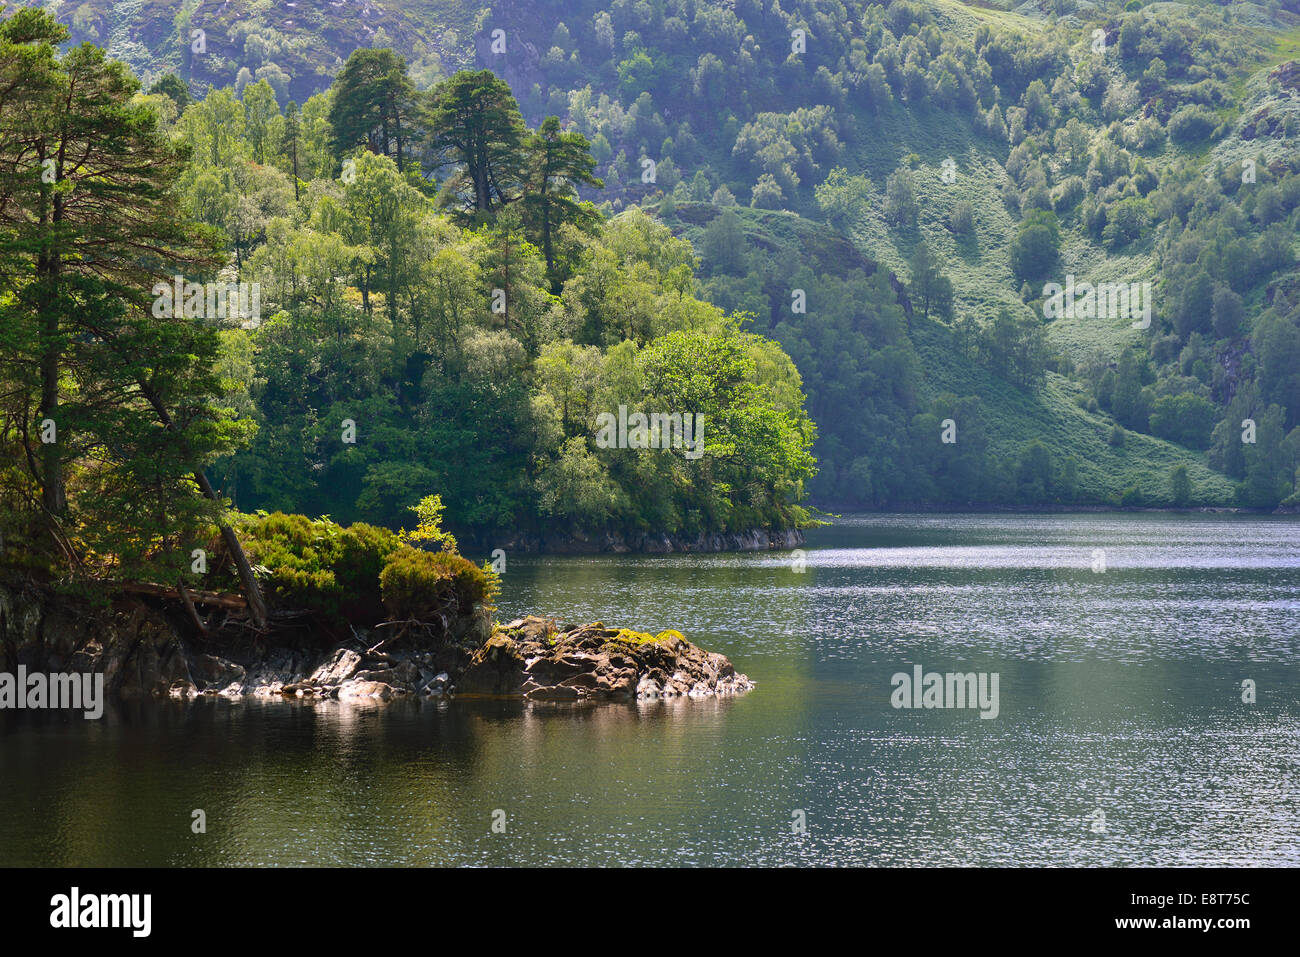 Waterside scenery at Loch Katrine, Stirling, Central, Scotland, United Kingdom - Stock Image